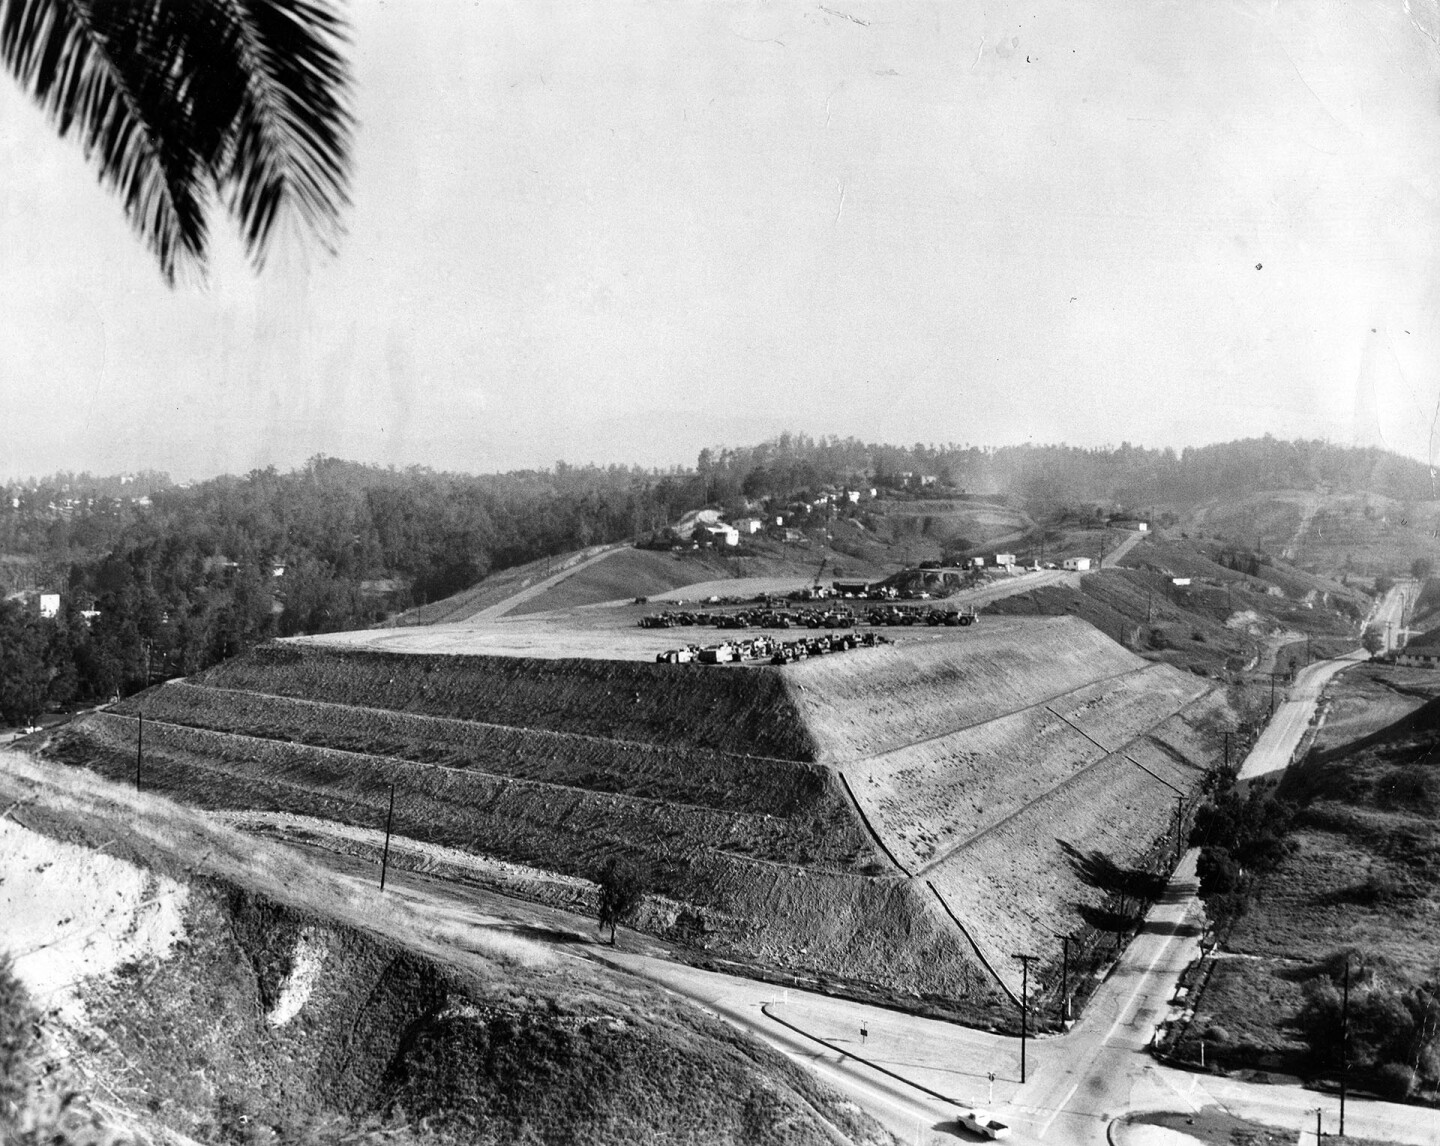 Grading work for Dodger Stadium, 1960. Courtesy of the Photo Collection - Los Angeles Public Library.